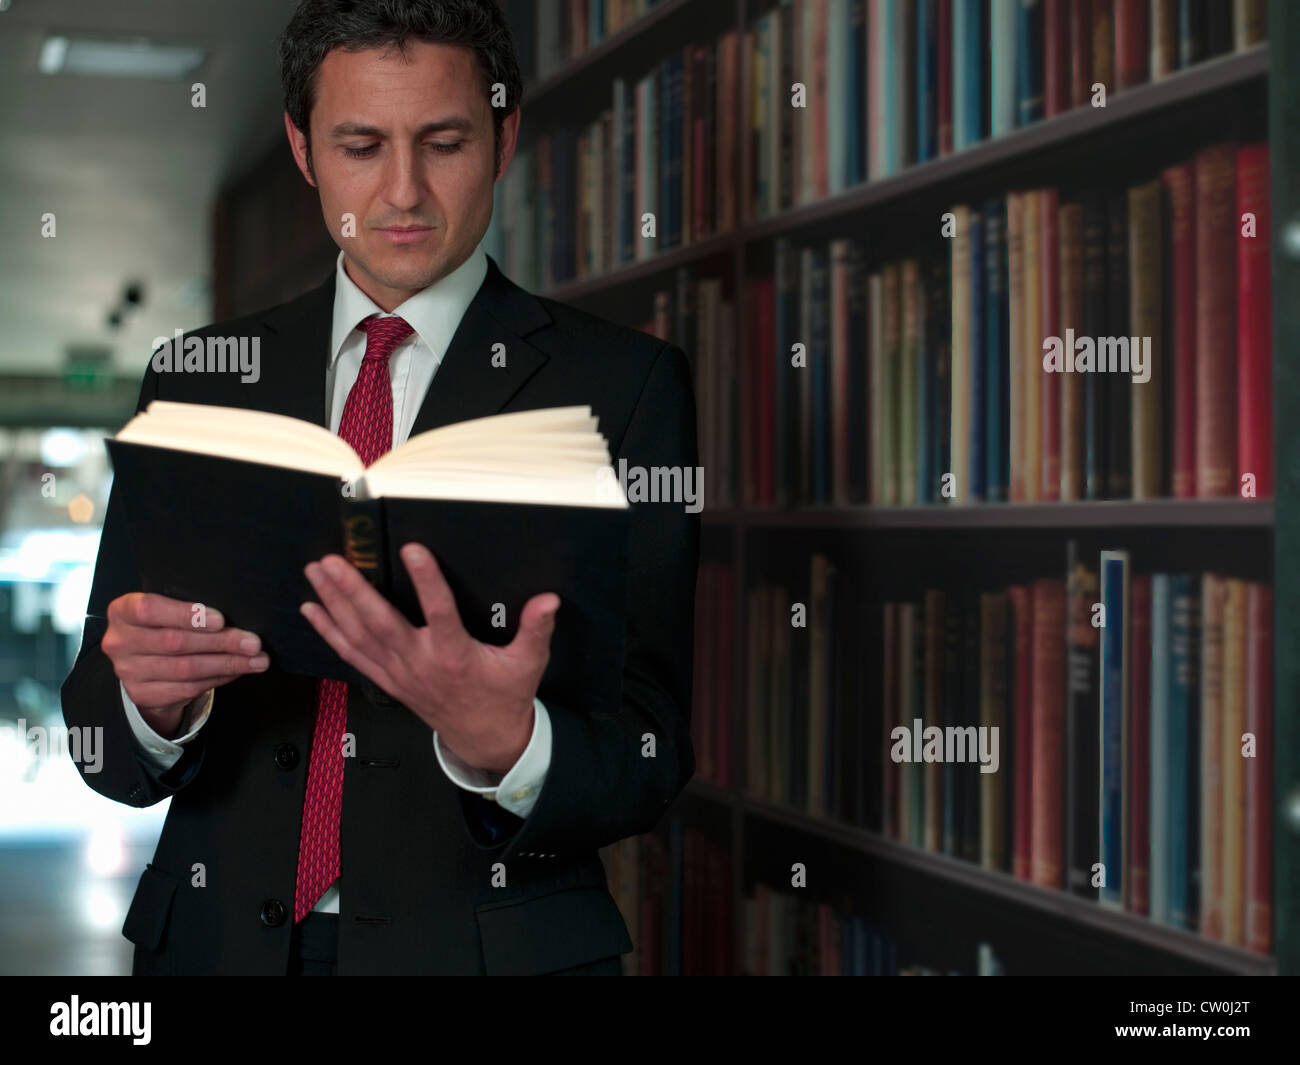 Businessman reading book in library Photo Stock